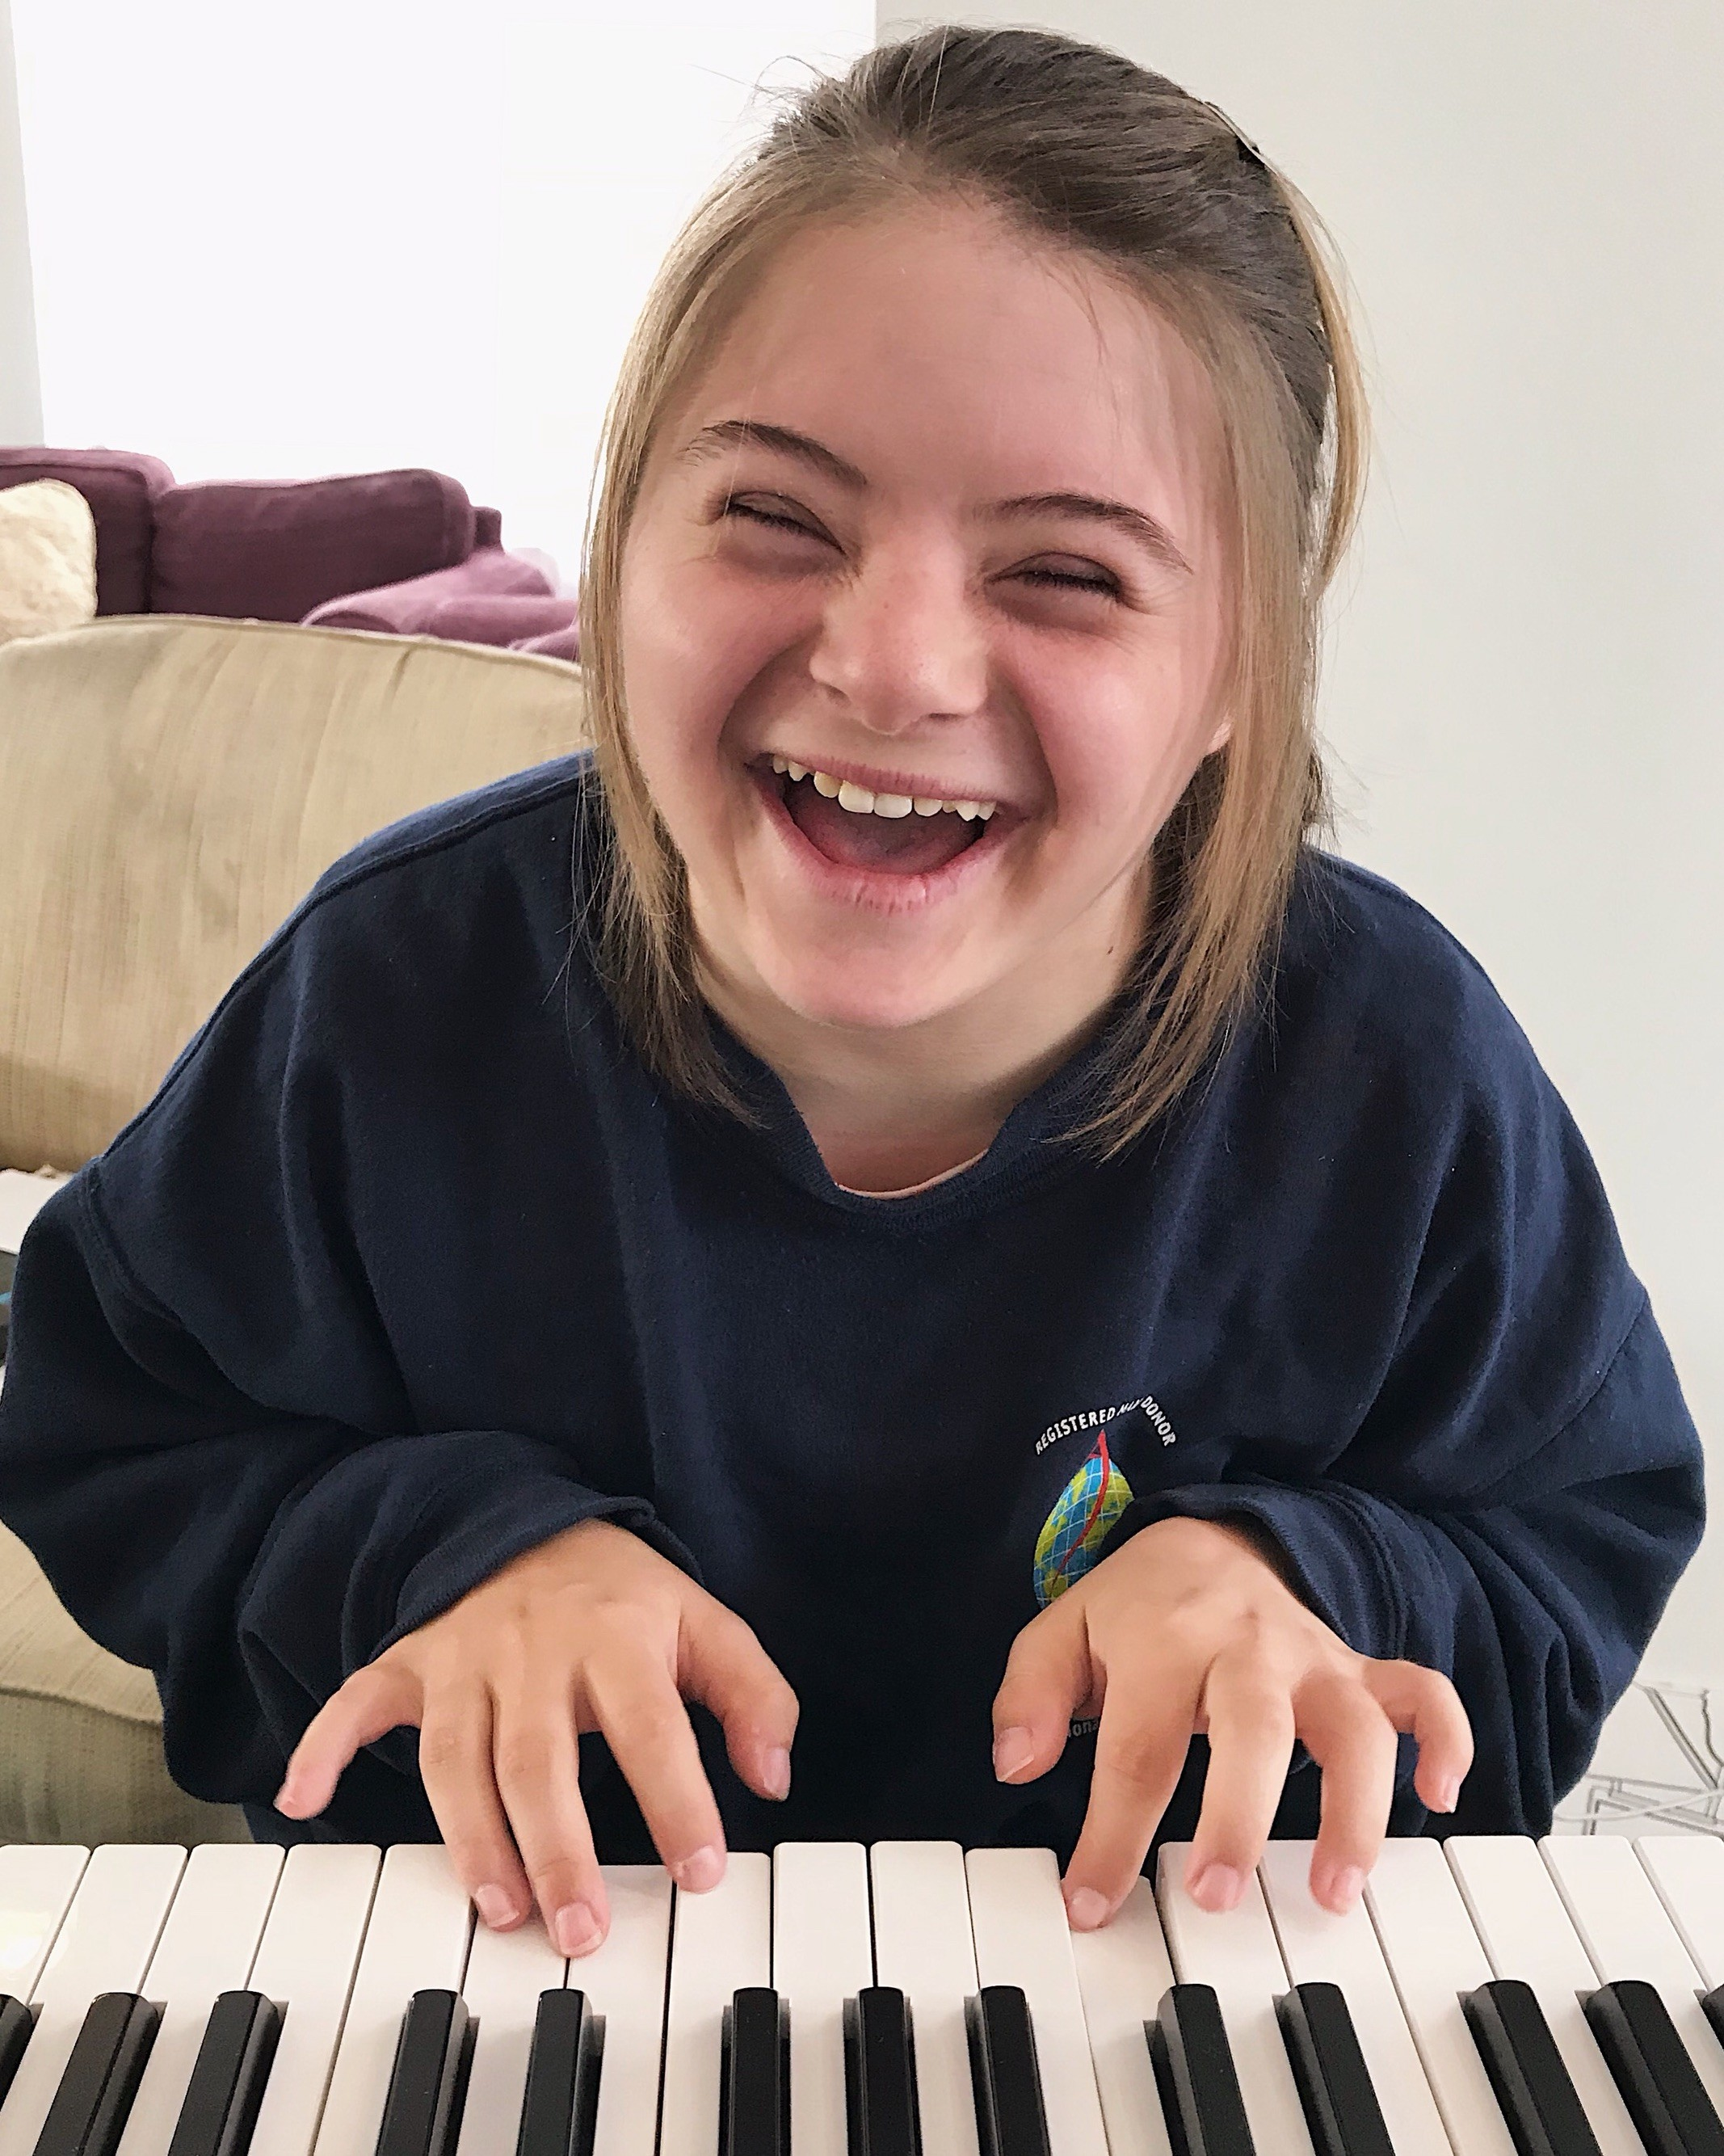 Grace rocks out on the piano!